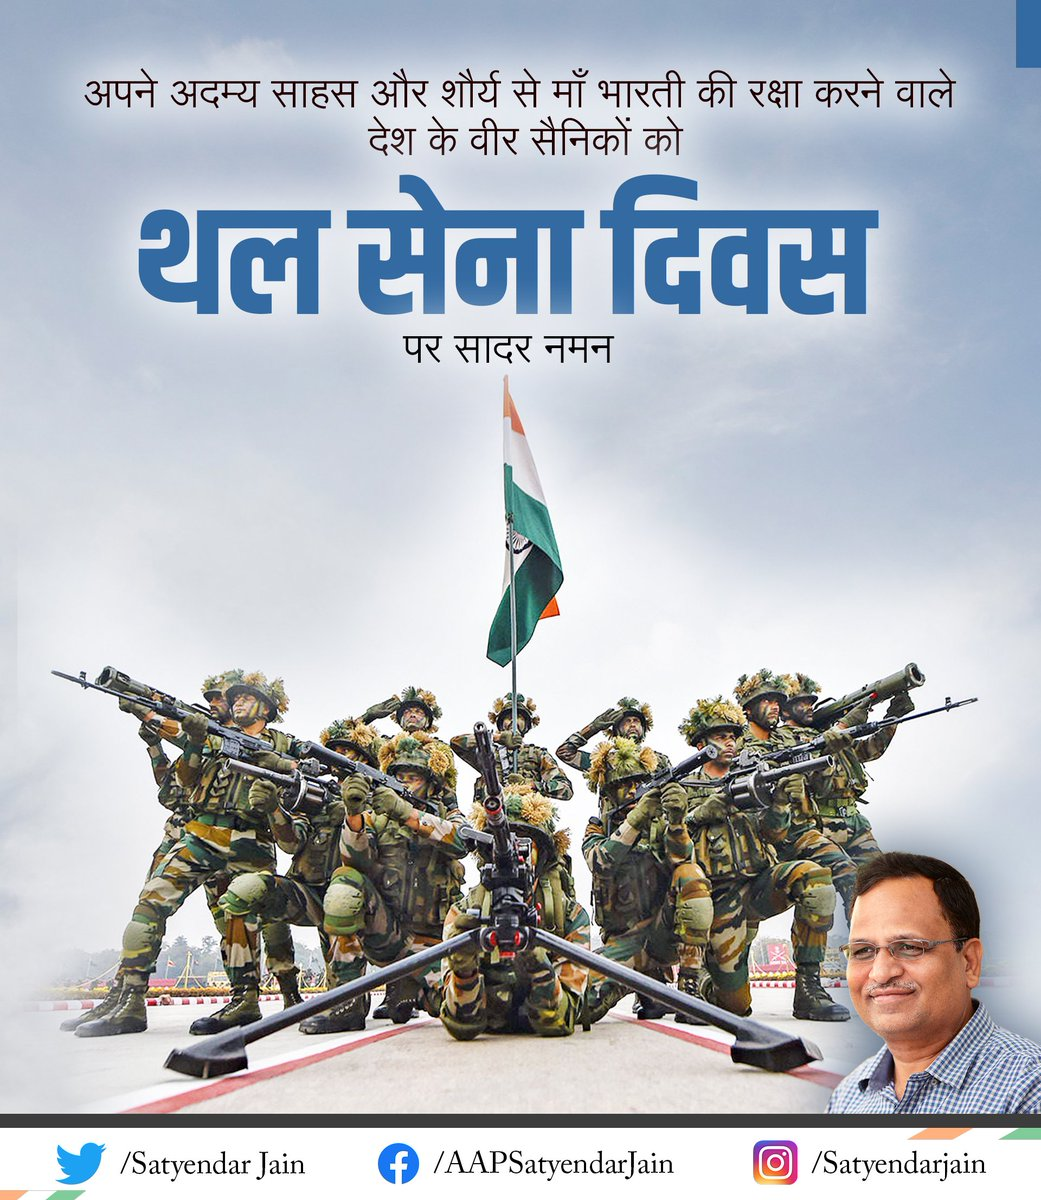 On the occasion of #ArmyDay, we salute the indomitable valour, determination and dedication of our army.   We express our gratitude to those brave soldiers, whose valour & supreme sacrifice in the line of duty has inspired us to be courageous towards our service of the nation.